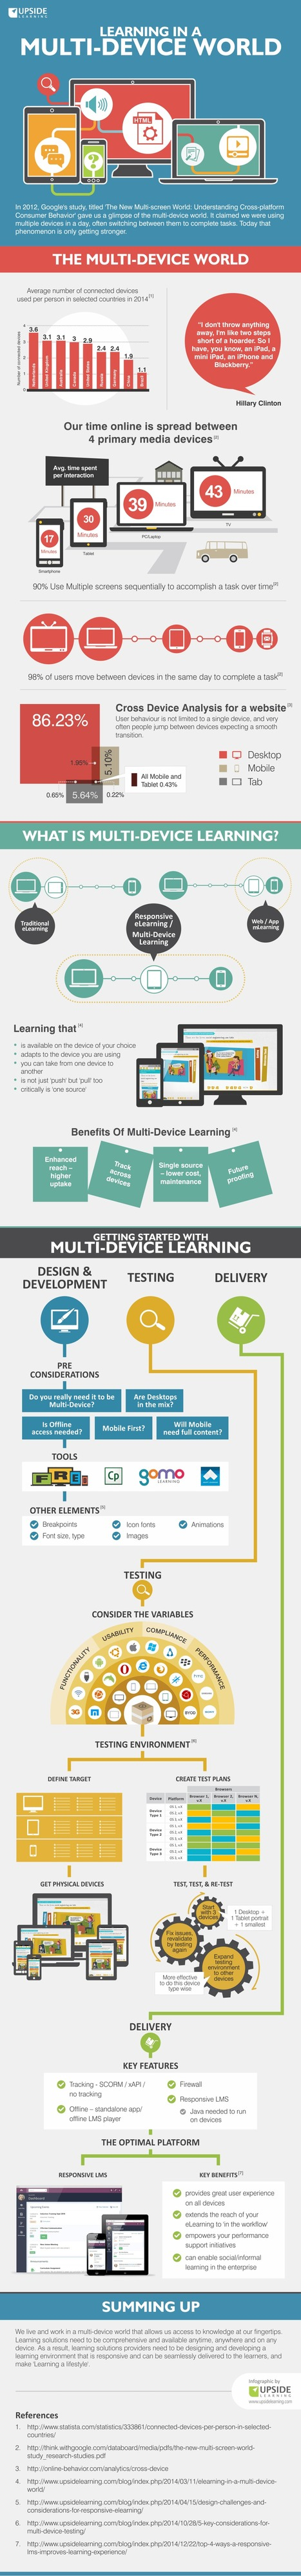 Learning in a Multi-Device World Infographic | Wiki_Universe | Scoop.it